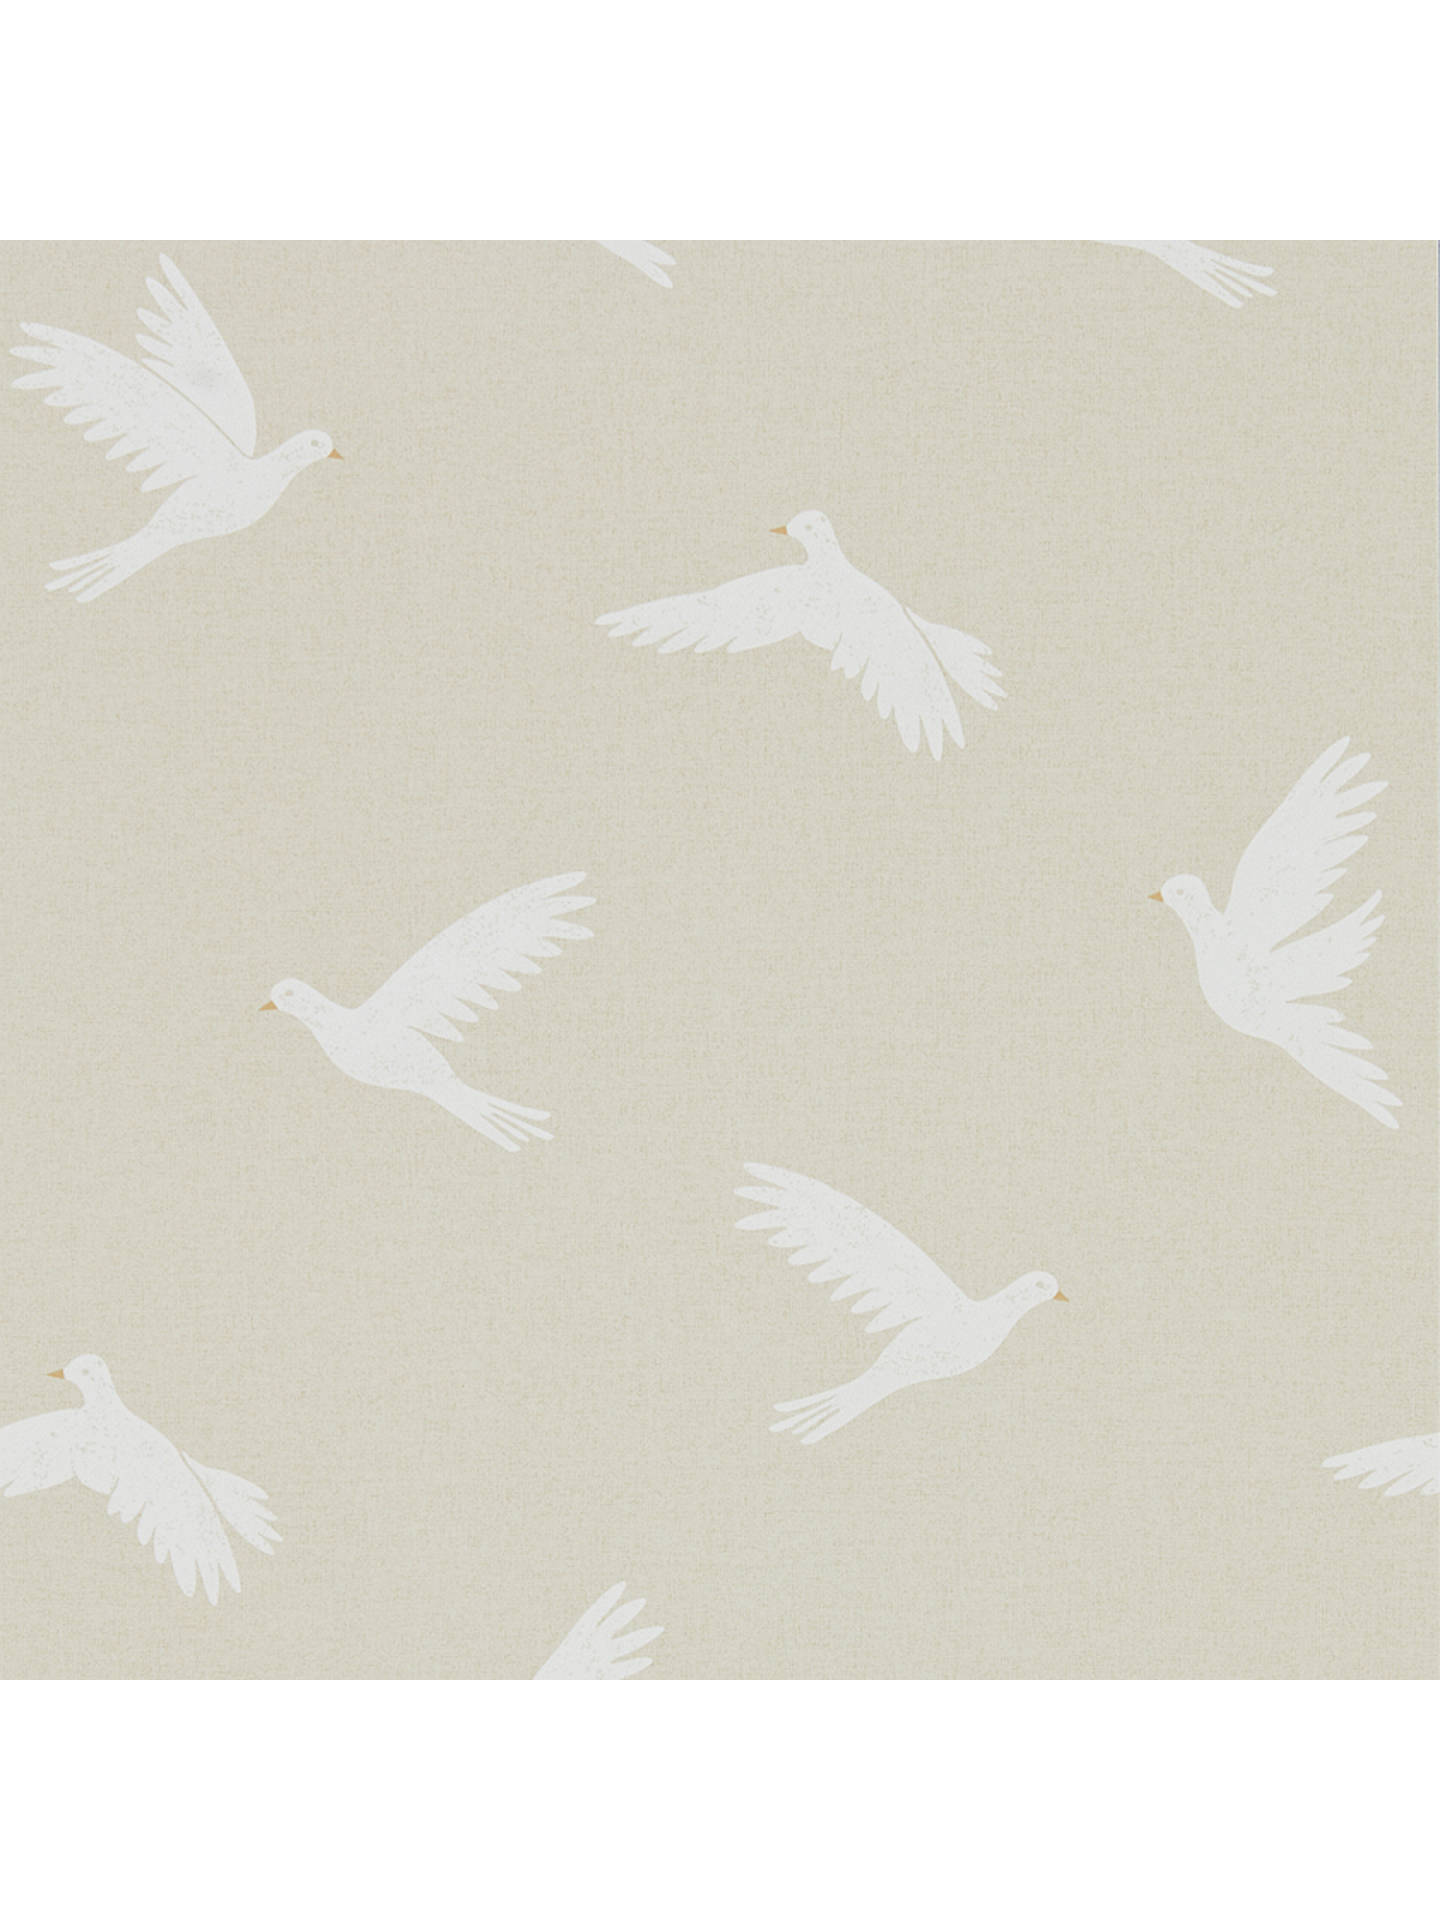 Buy Sanderson Home Paper Doves Wallpaper DHPO216378 Online at johnlewis.com